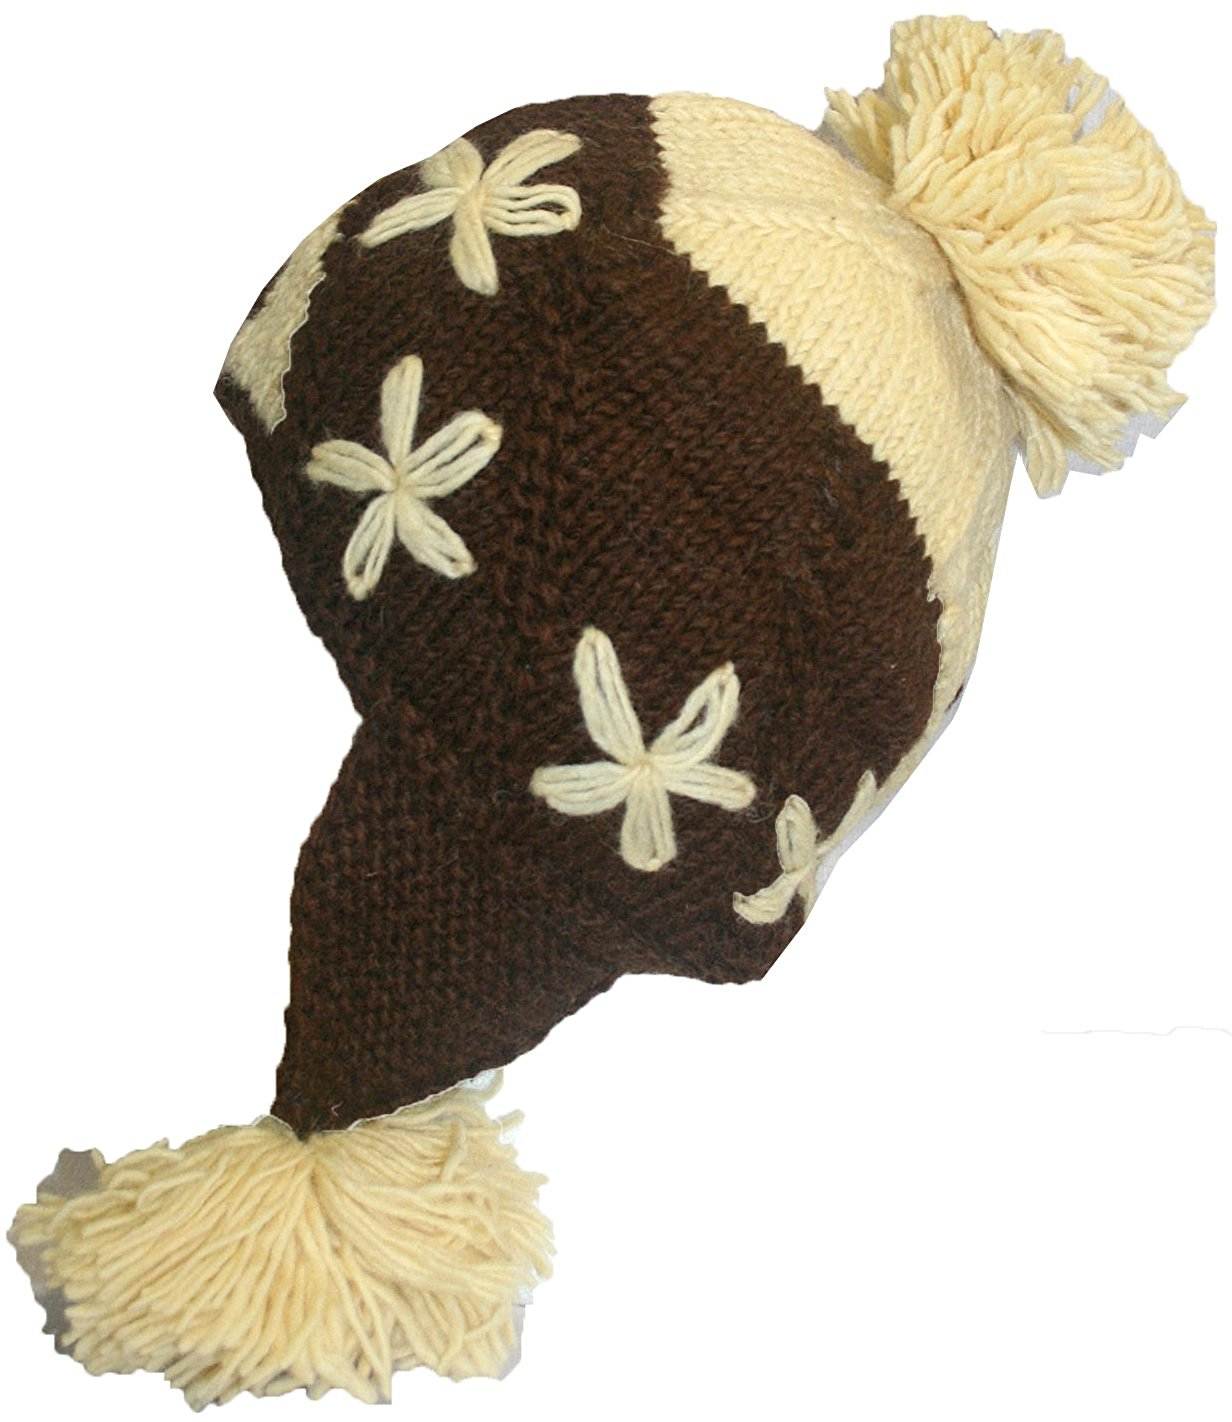 Highland Wool Knit Beanie Fleece Earflap Beanies - Agan Traders, 1410 CB H